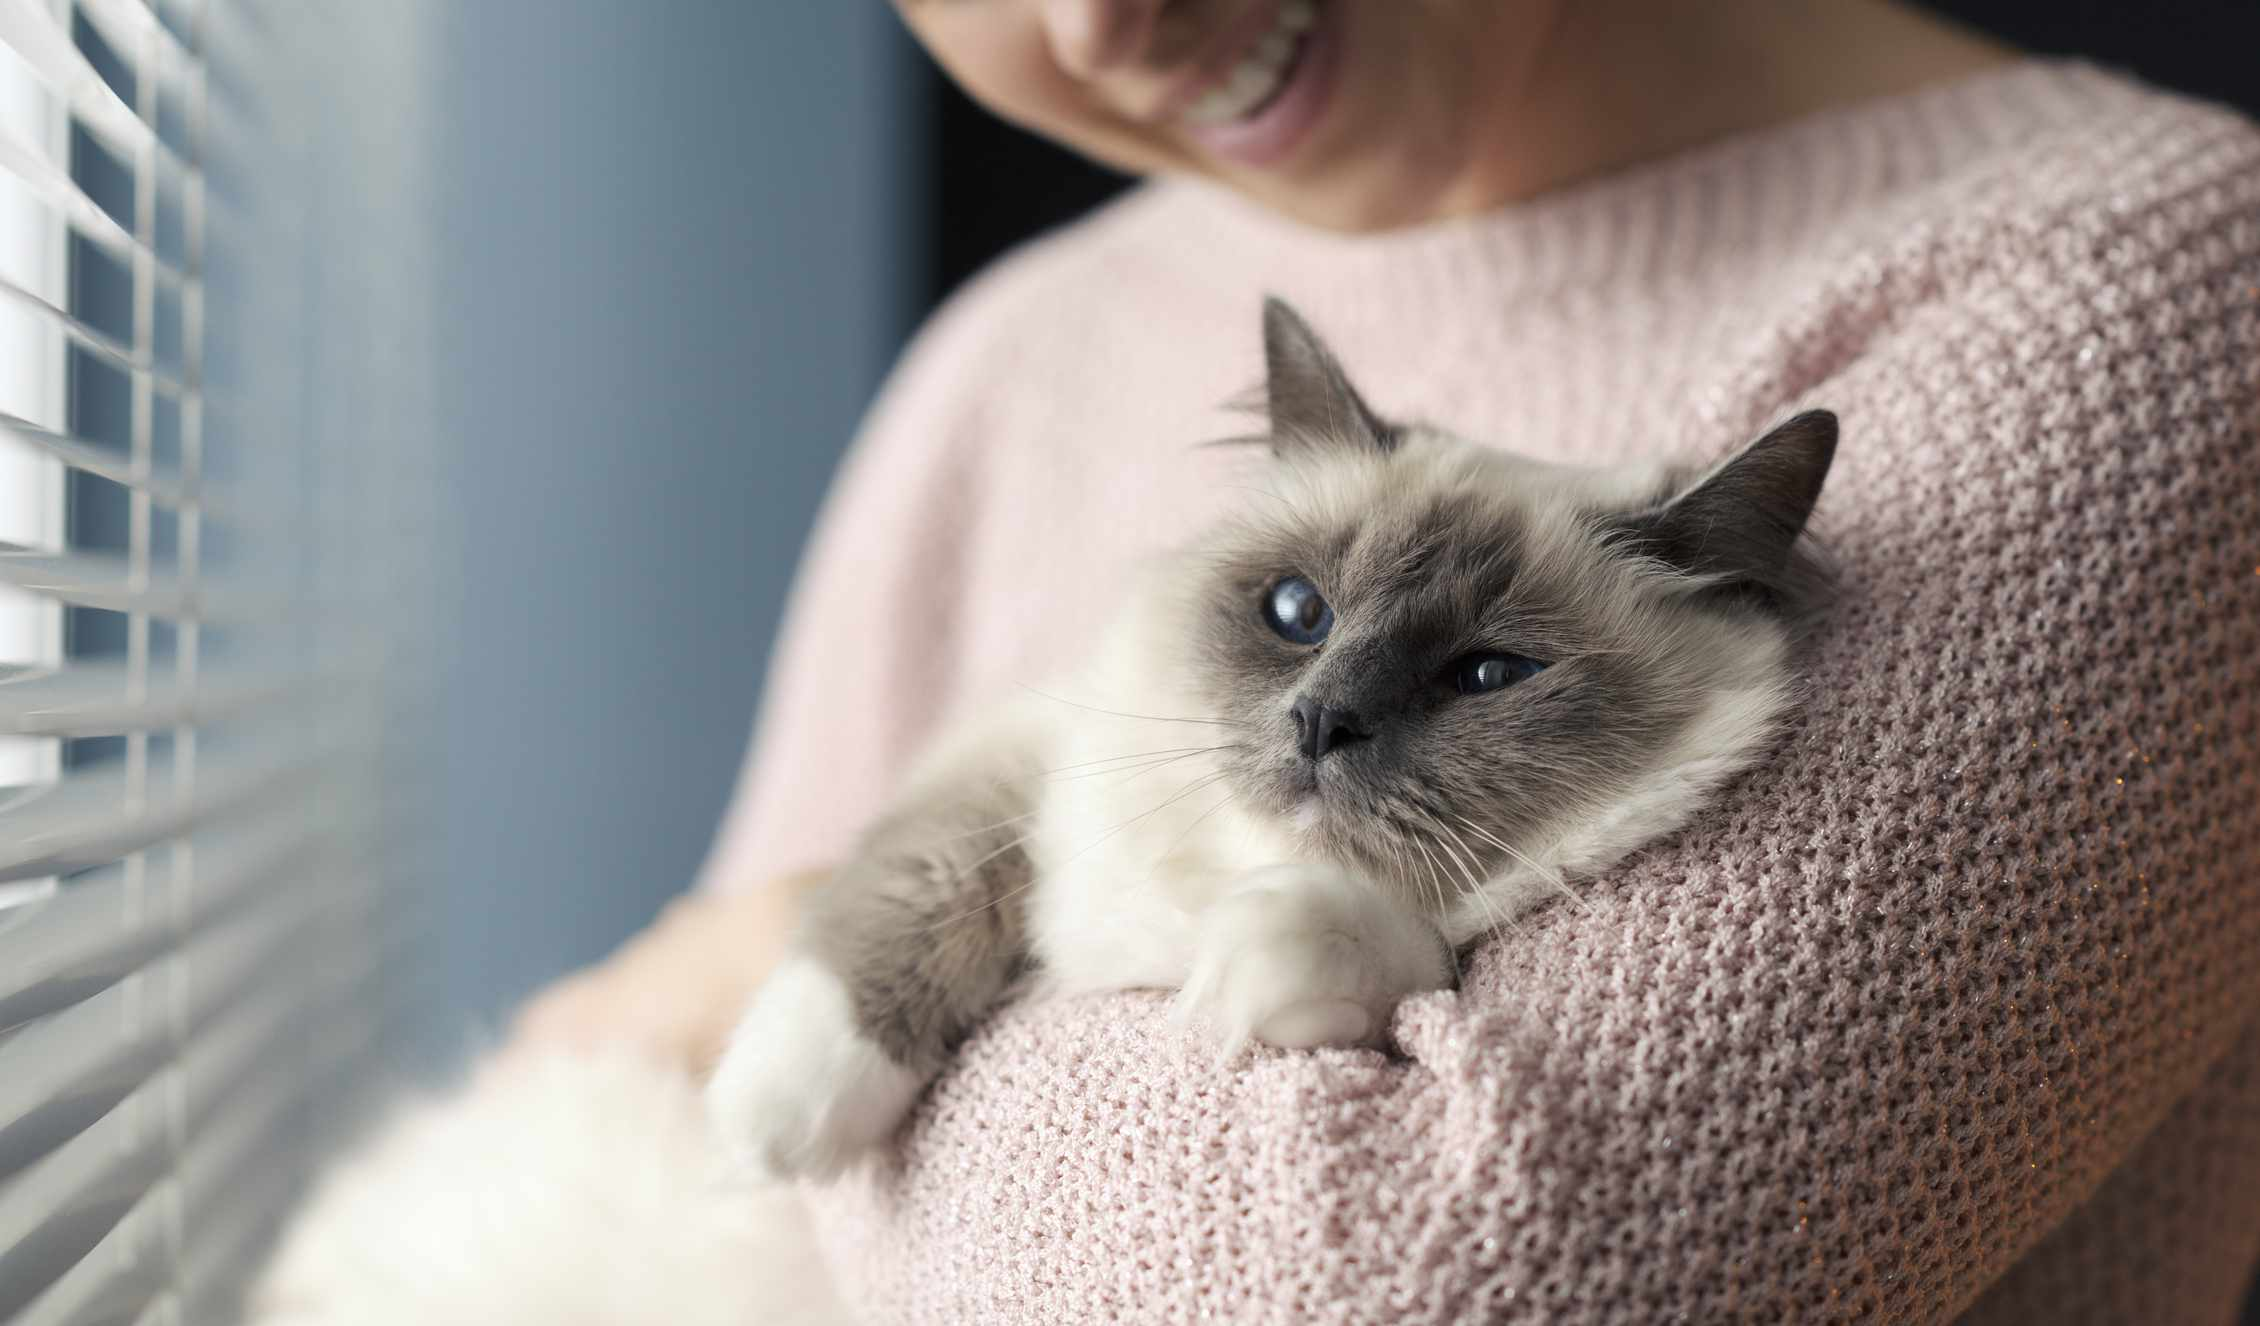 A woman in a white sweater holding a white fluffy cat with blue eyes.